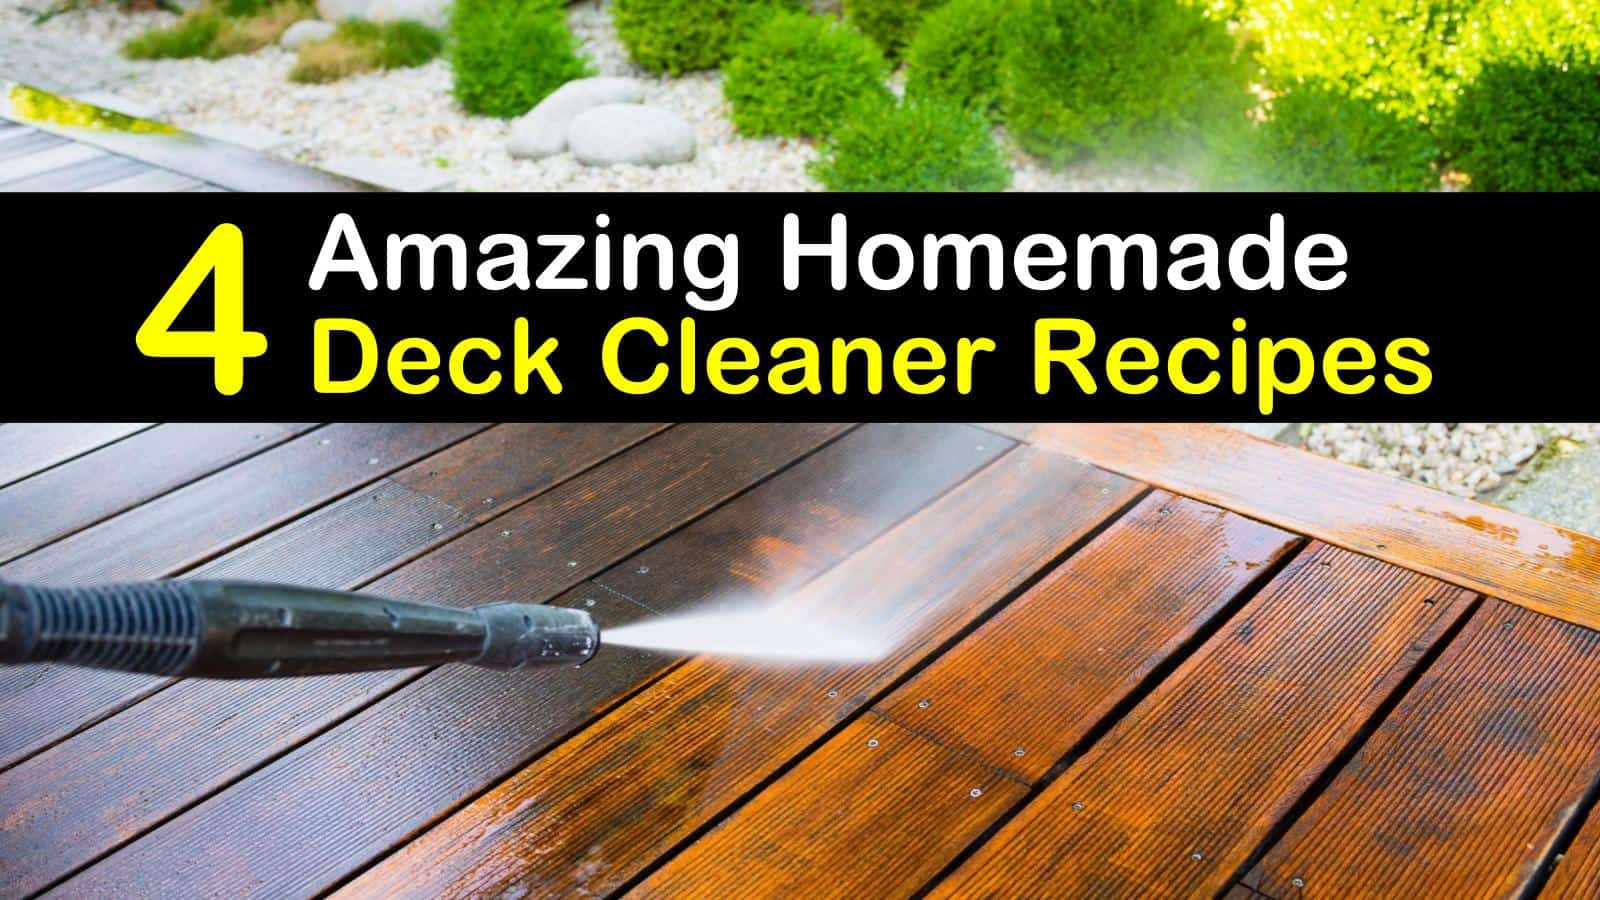 homemade deck cleaner titilimg